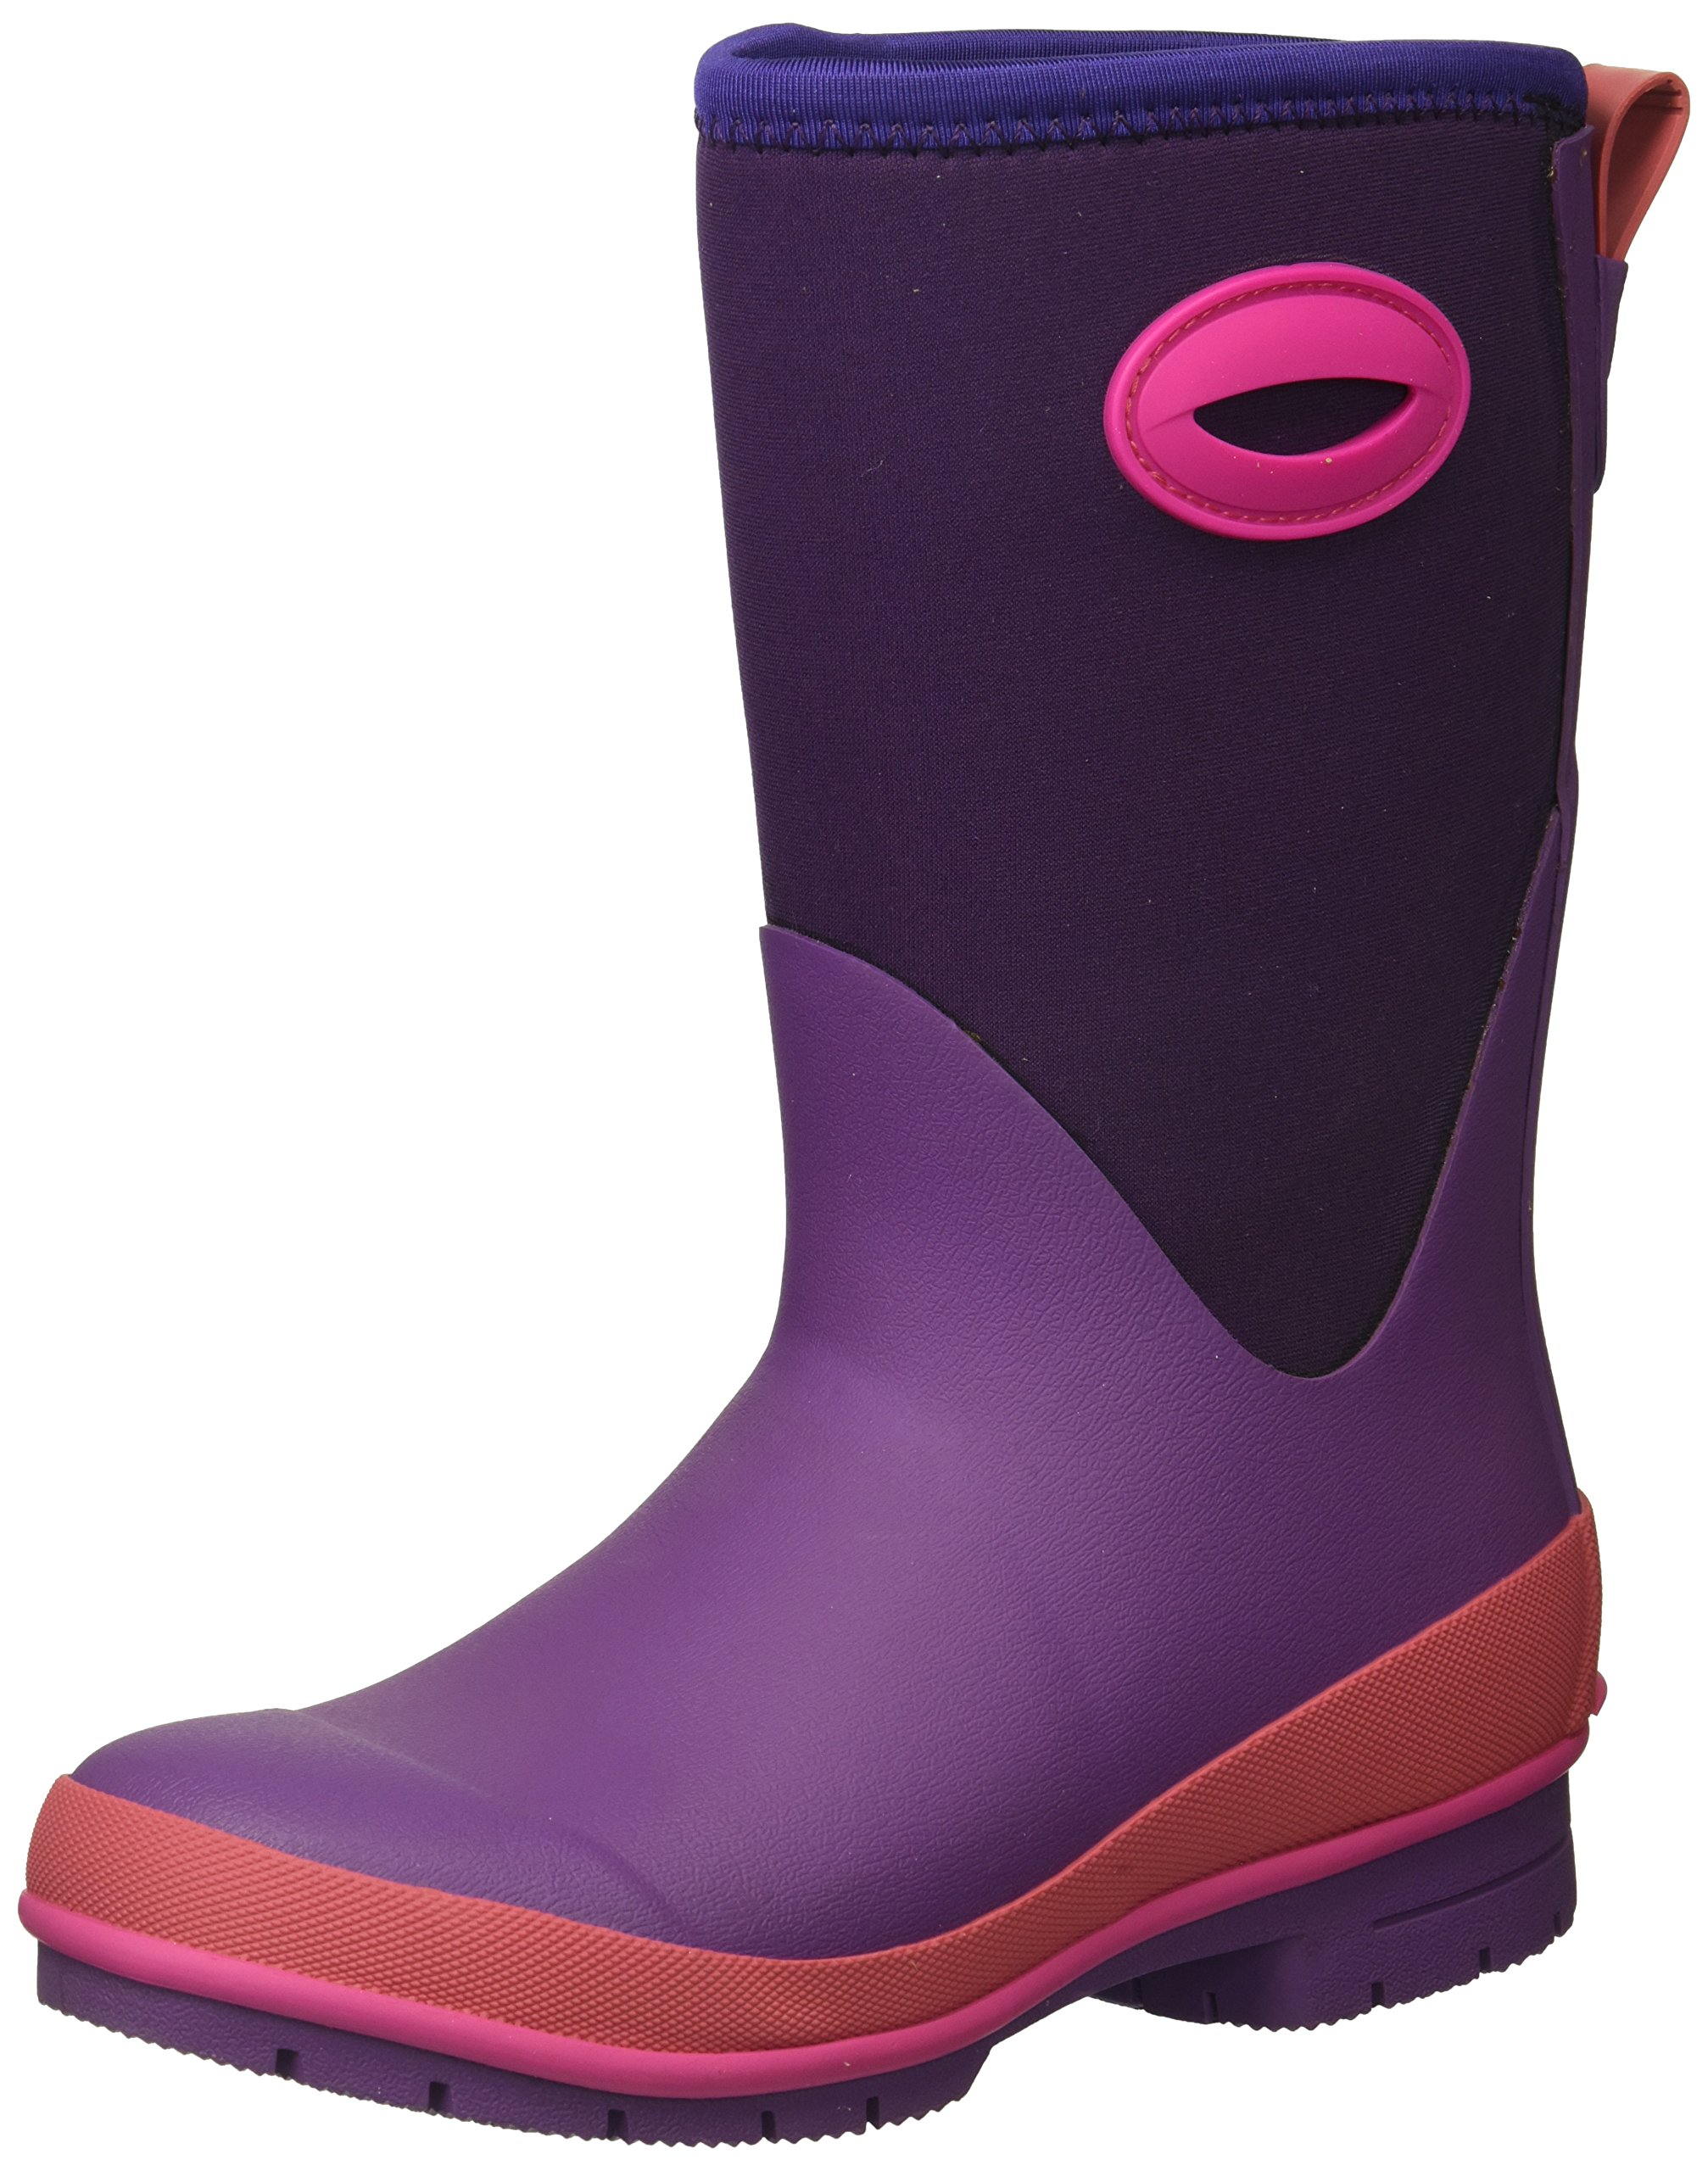 Western Chief Kids Cold Rated Neoprene Memory Foam Snow Boot, Purple, 2 M US Little Kid by Western Chief (Image #1)